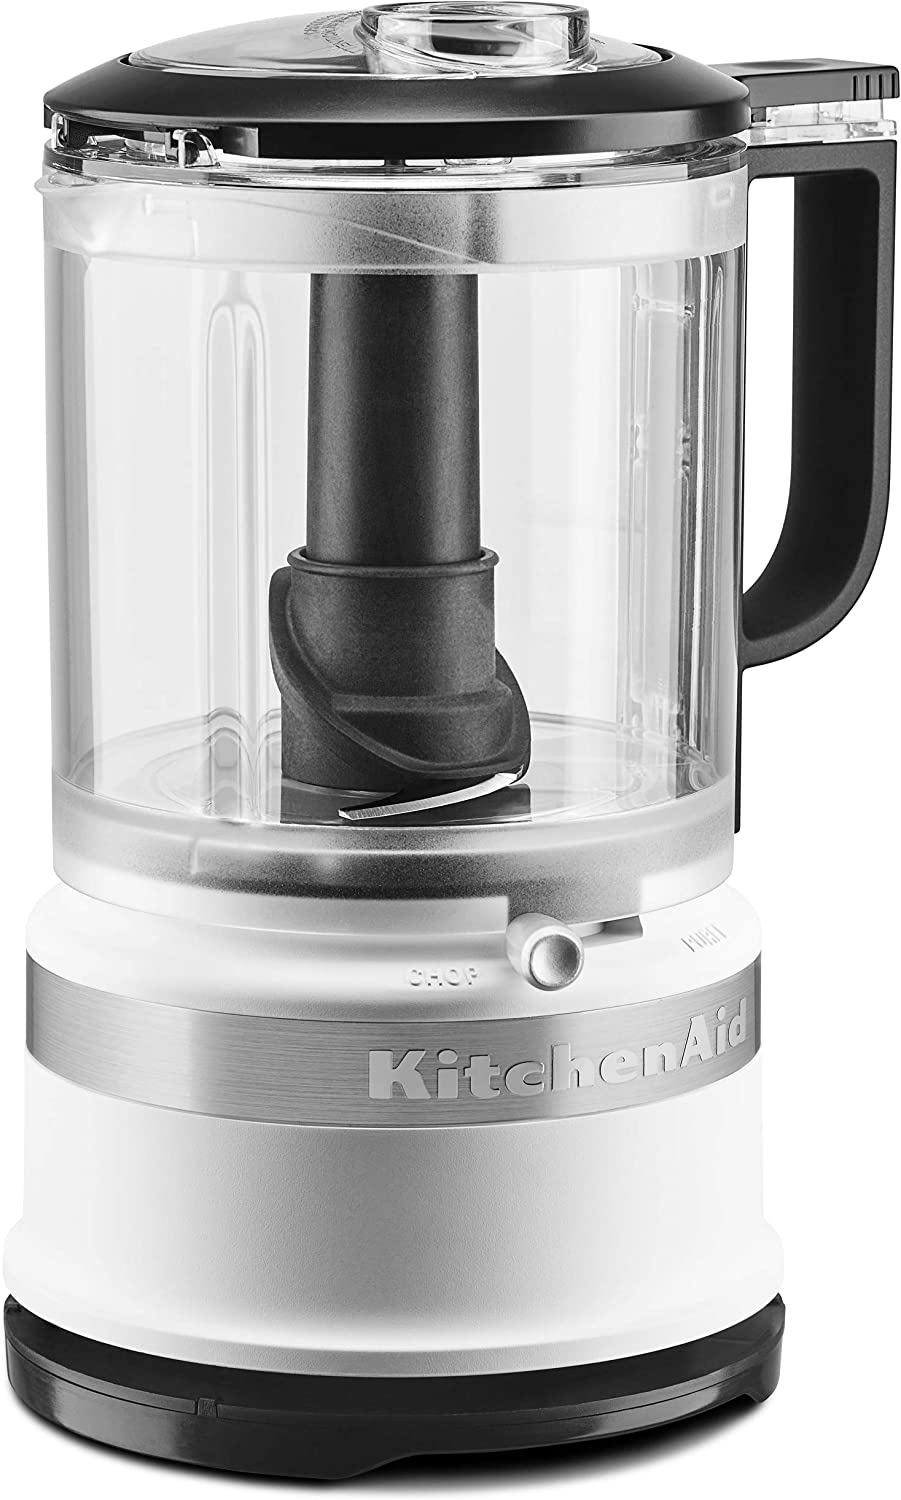 KitchenAid KFC0516FW 5 Cup whisking Accessory Food Chopper, Matte White